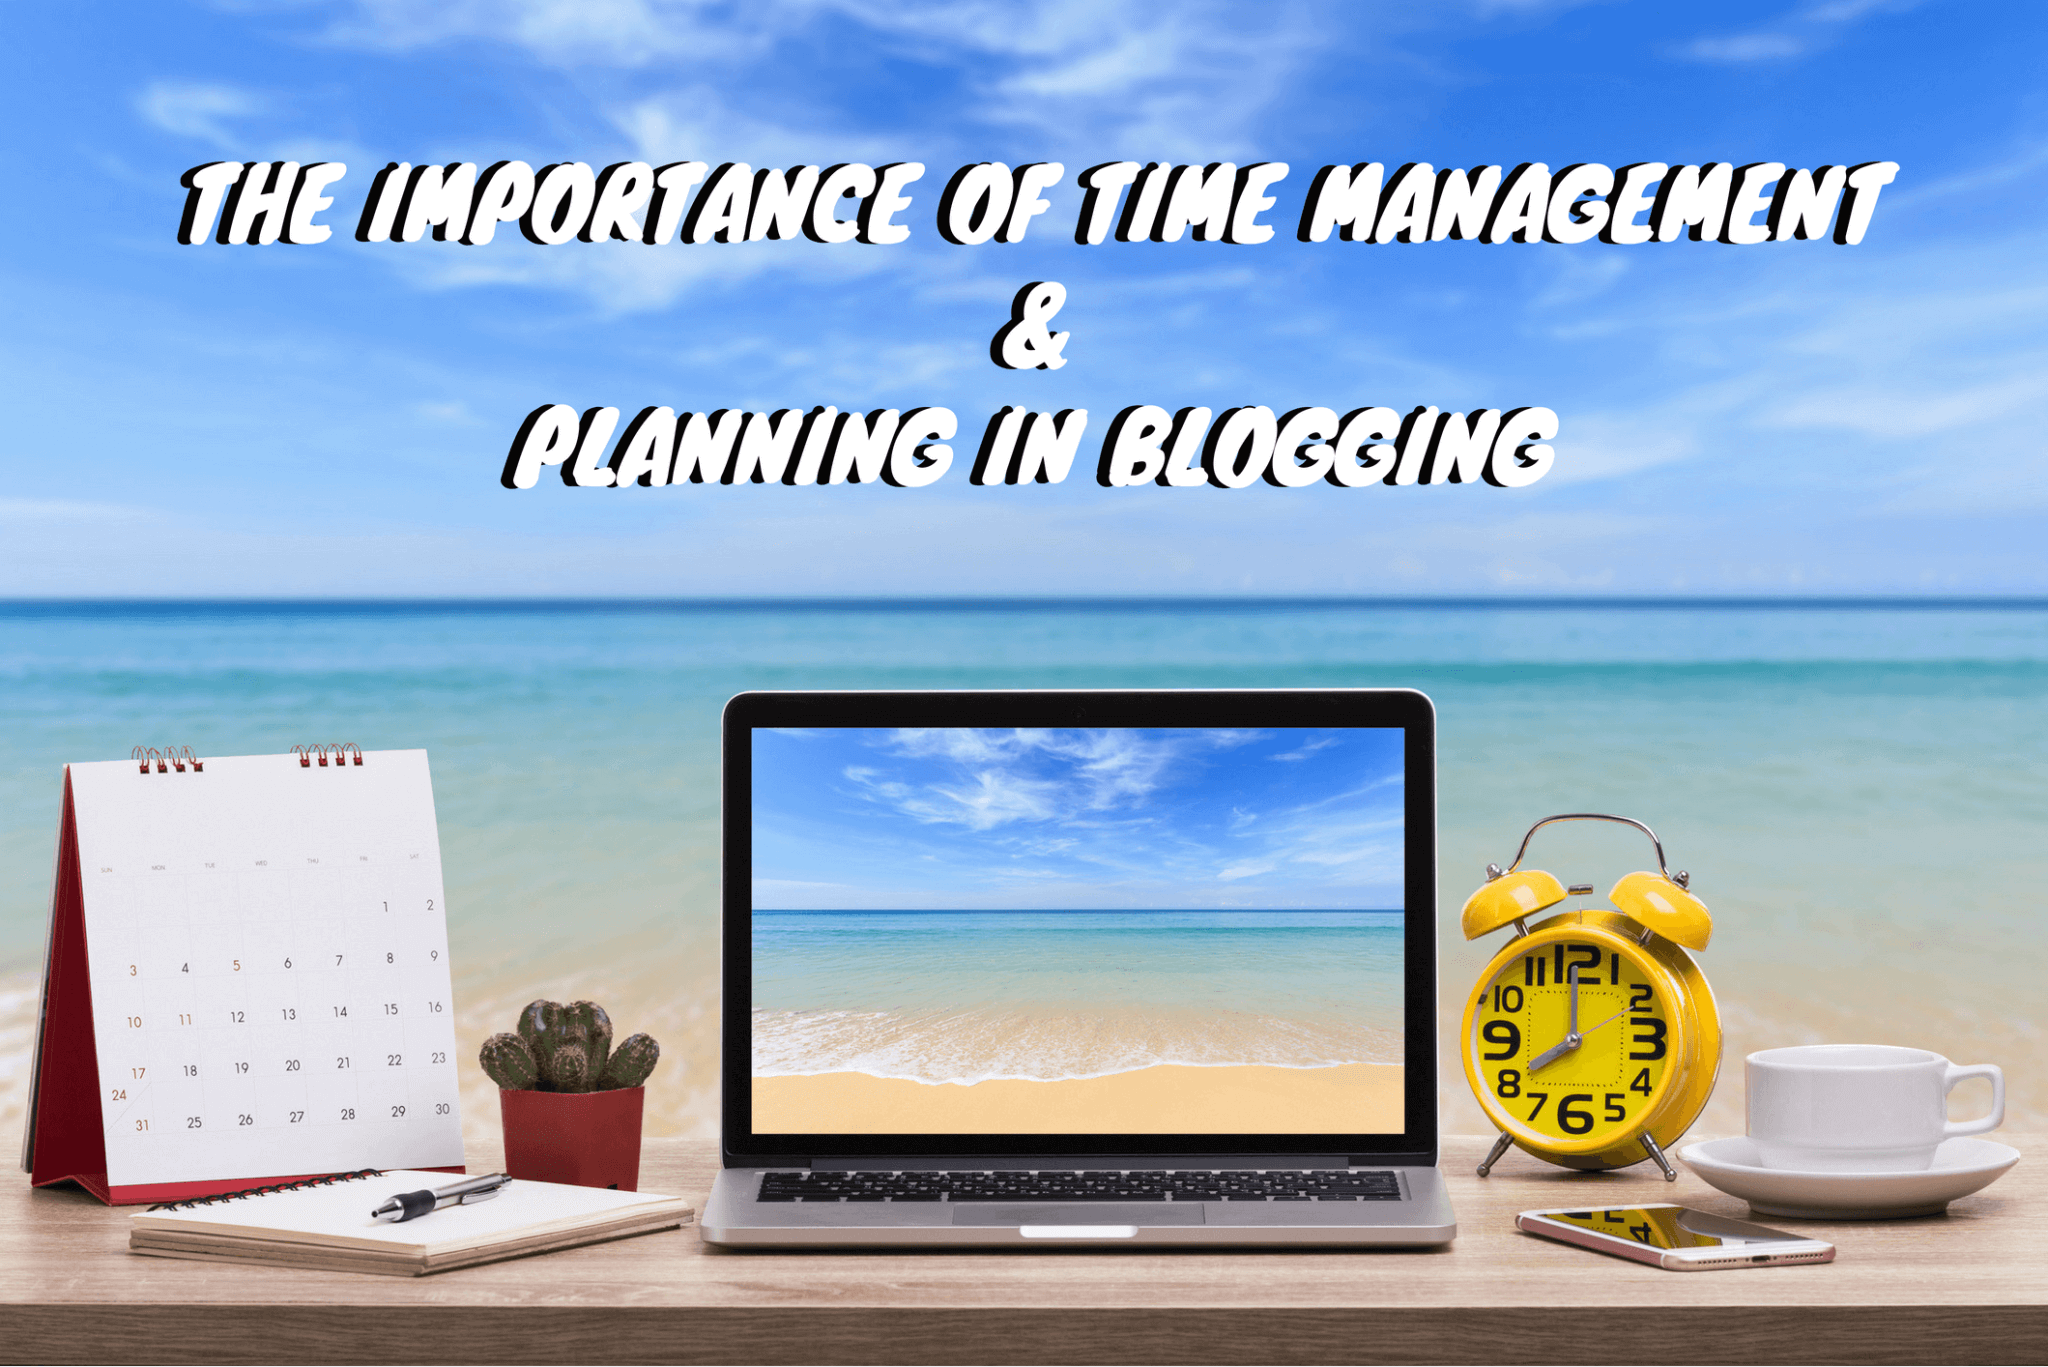 Importance of Time Management & Planning in Blogging